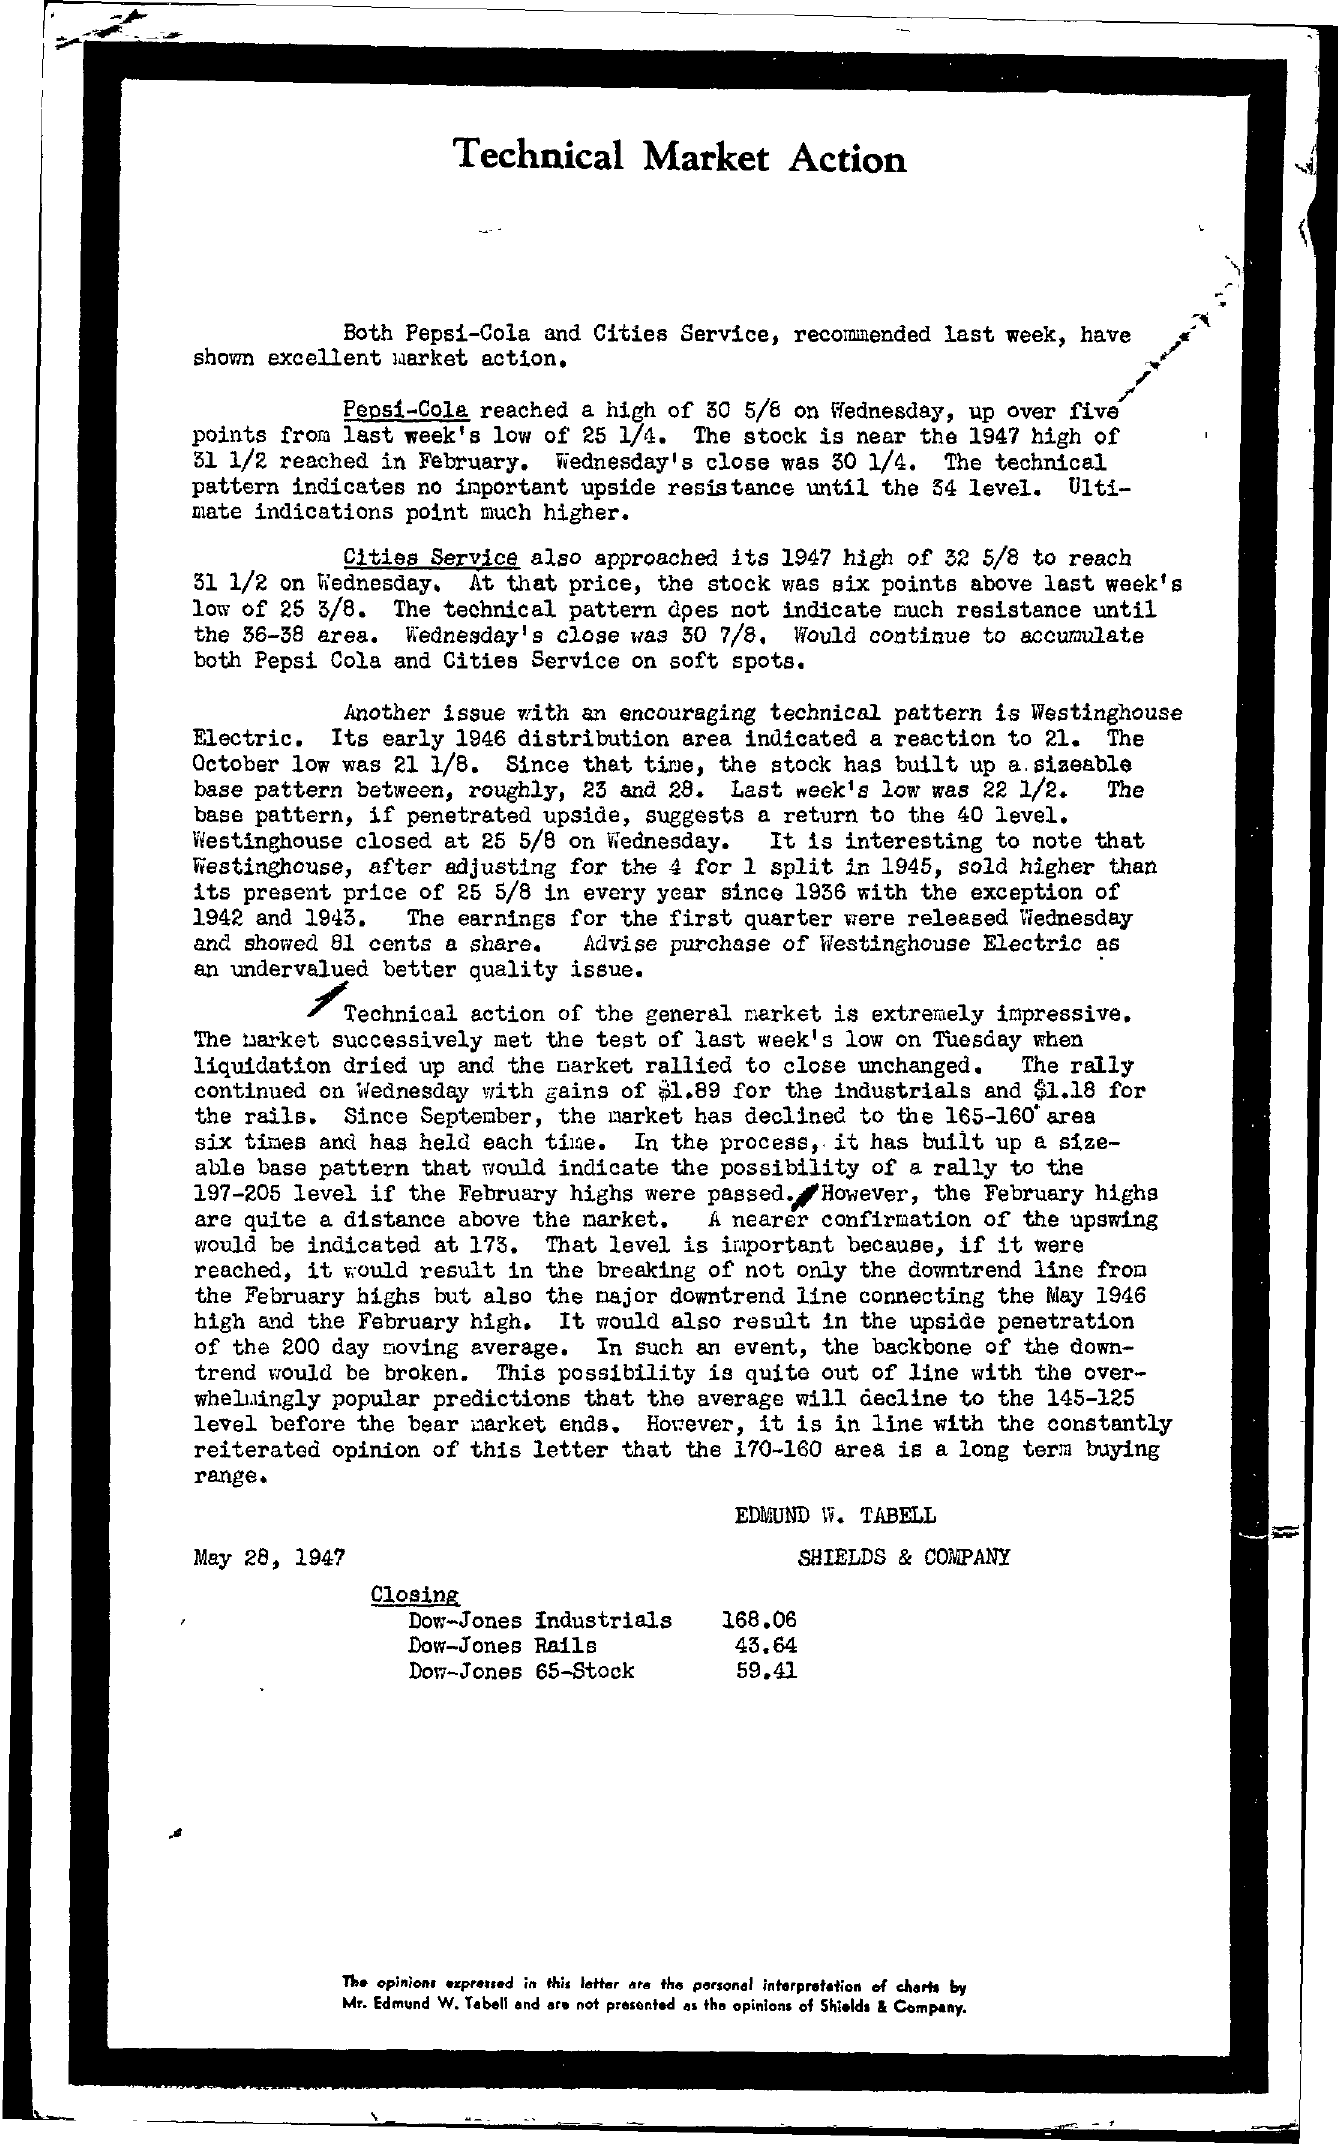 Tabell's Market Letter - May 28, 1947 page 1